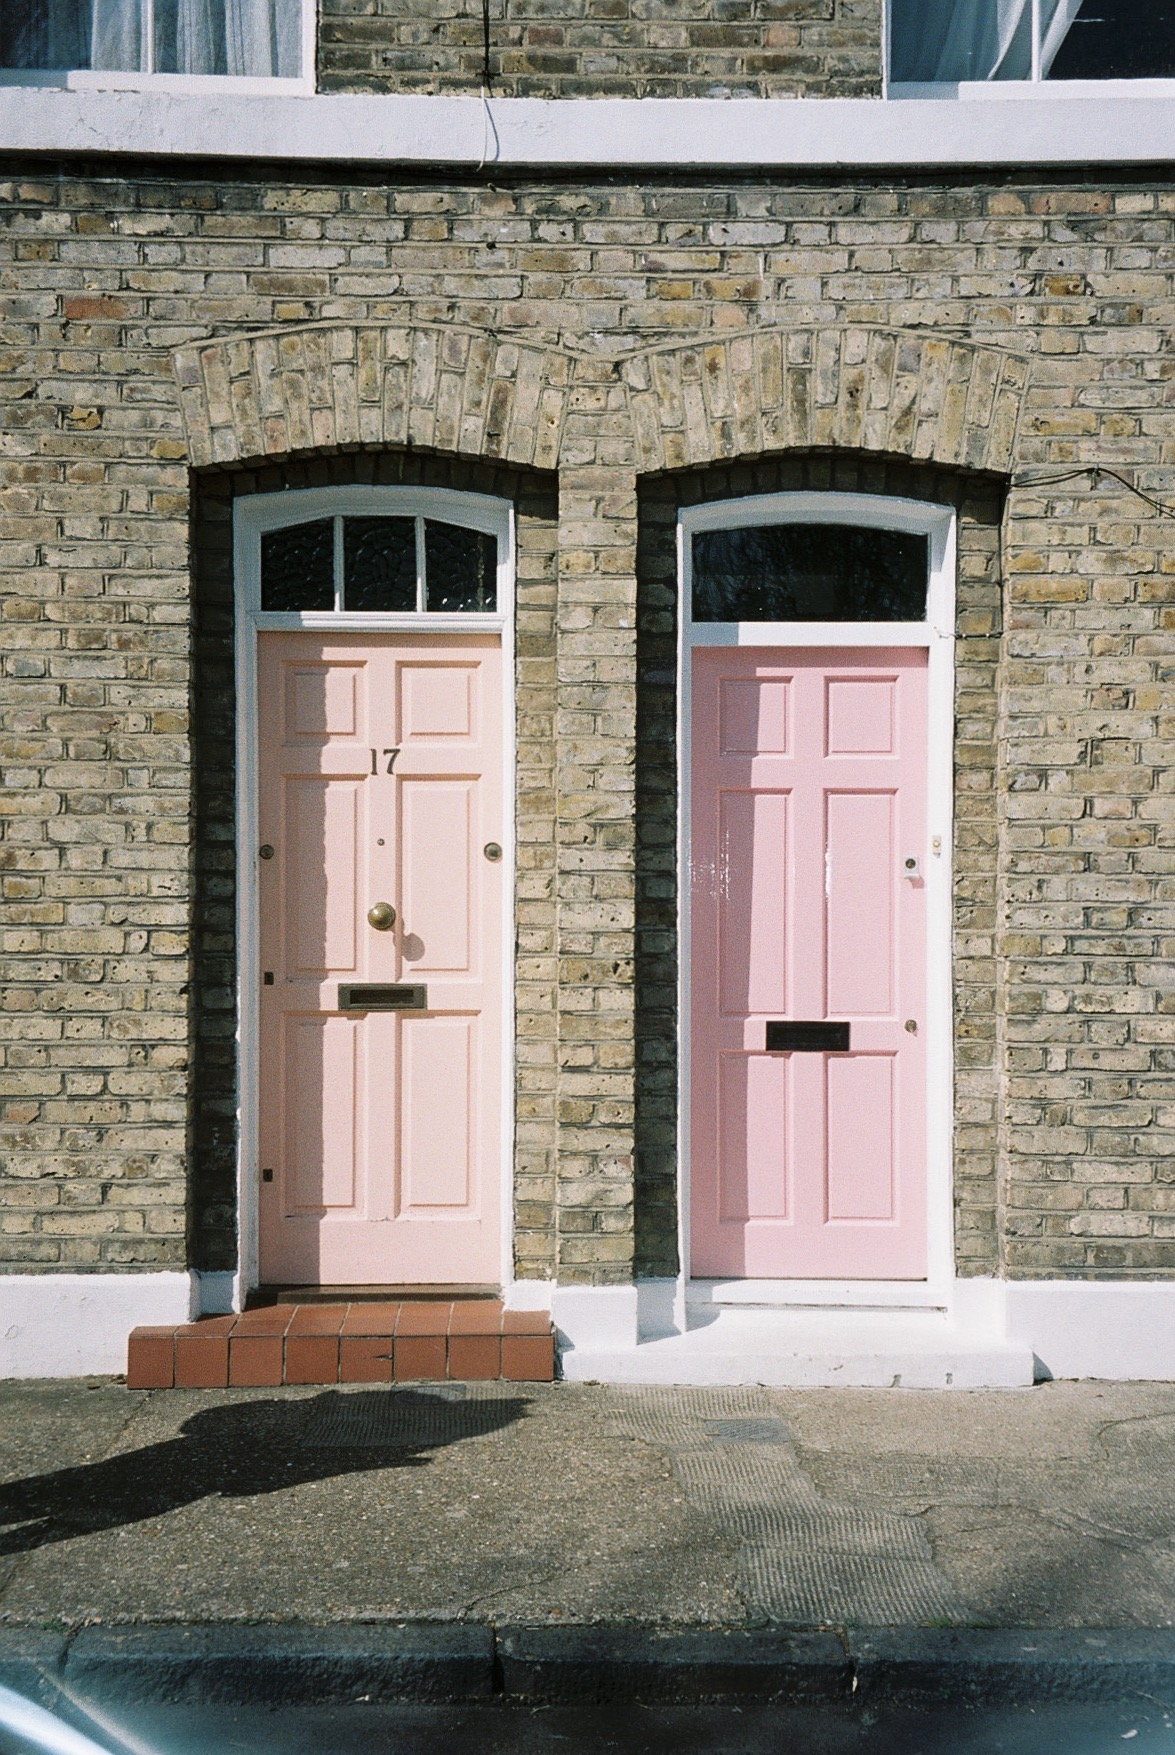 The cutest doors near by Columbia Road.  / As portas mais amorosas perto de Columbia road.